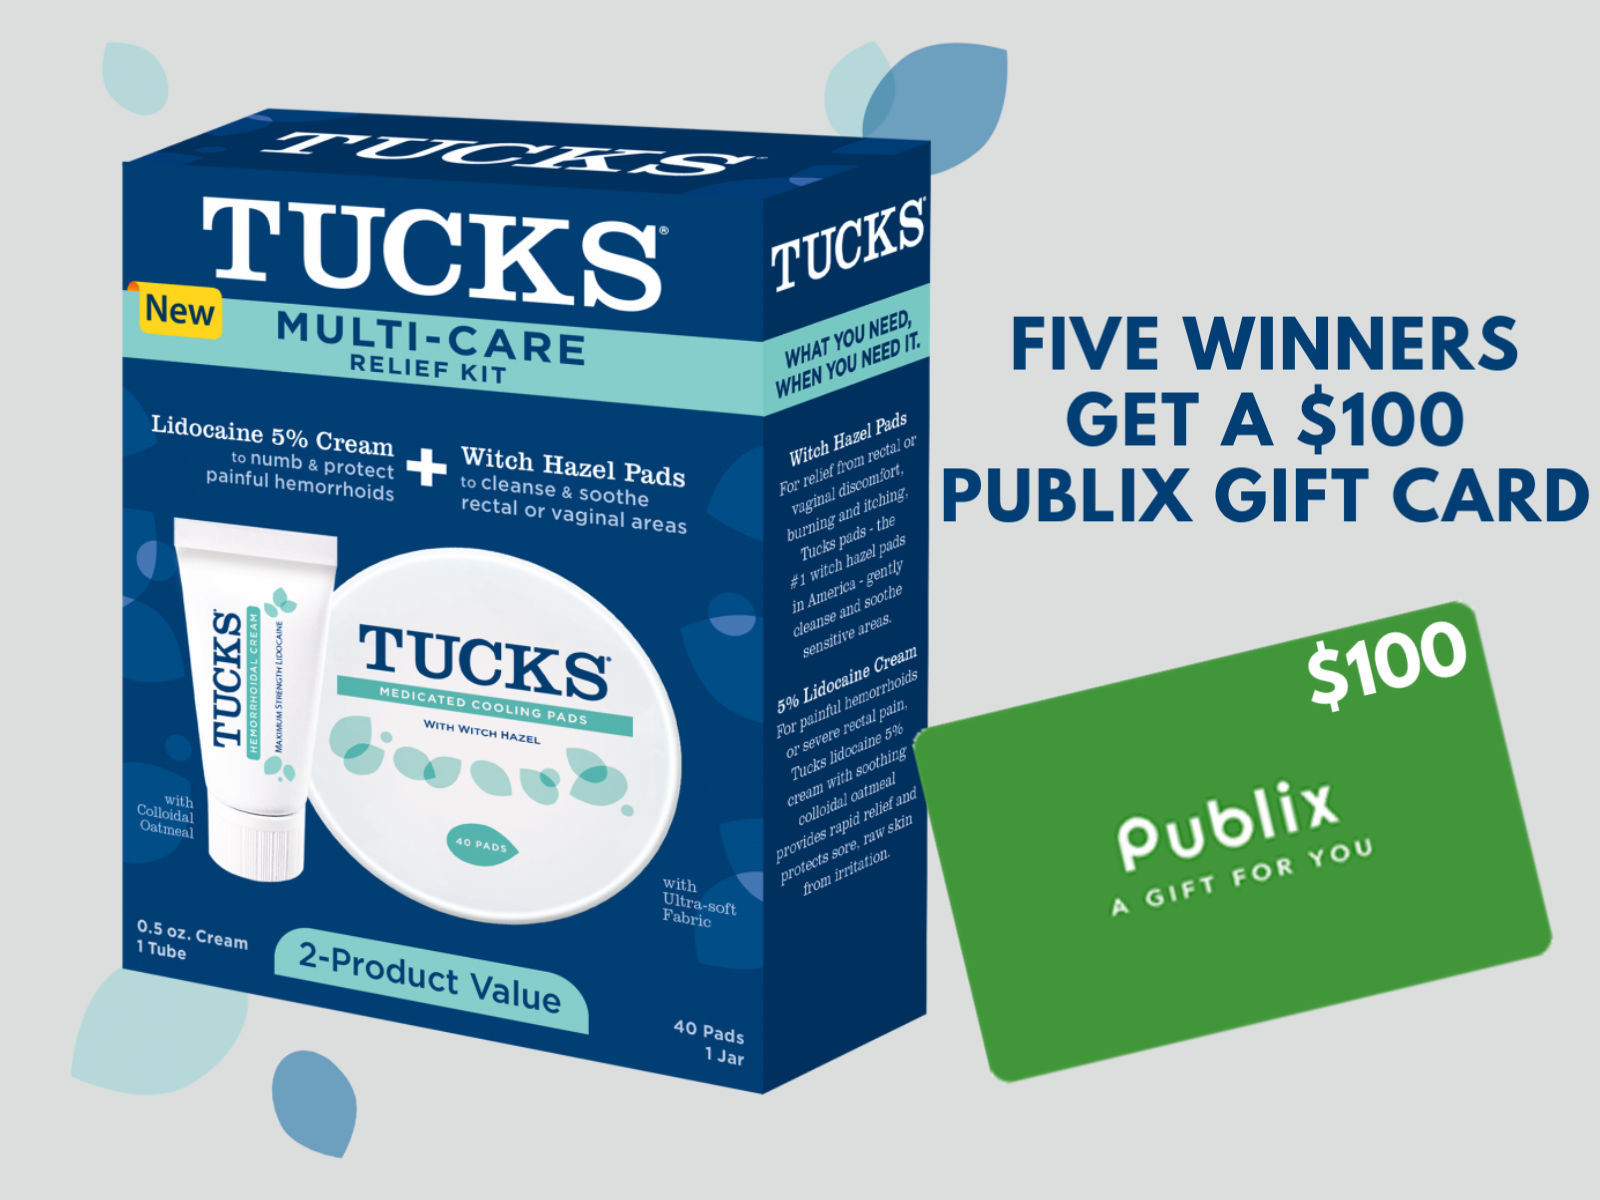 Look For Tucks Multi-Care Relief Kit At Publix + Enter To Win One Of Five $100 Publix Gift Cards! on I Heart Publix